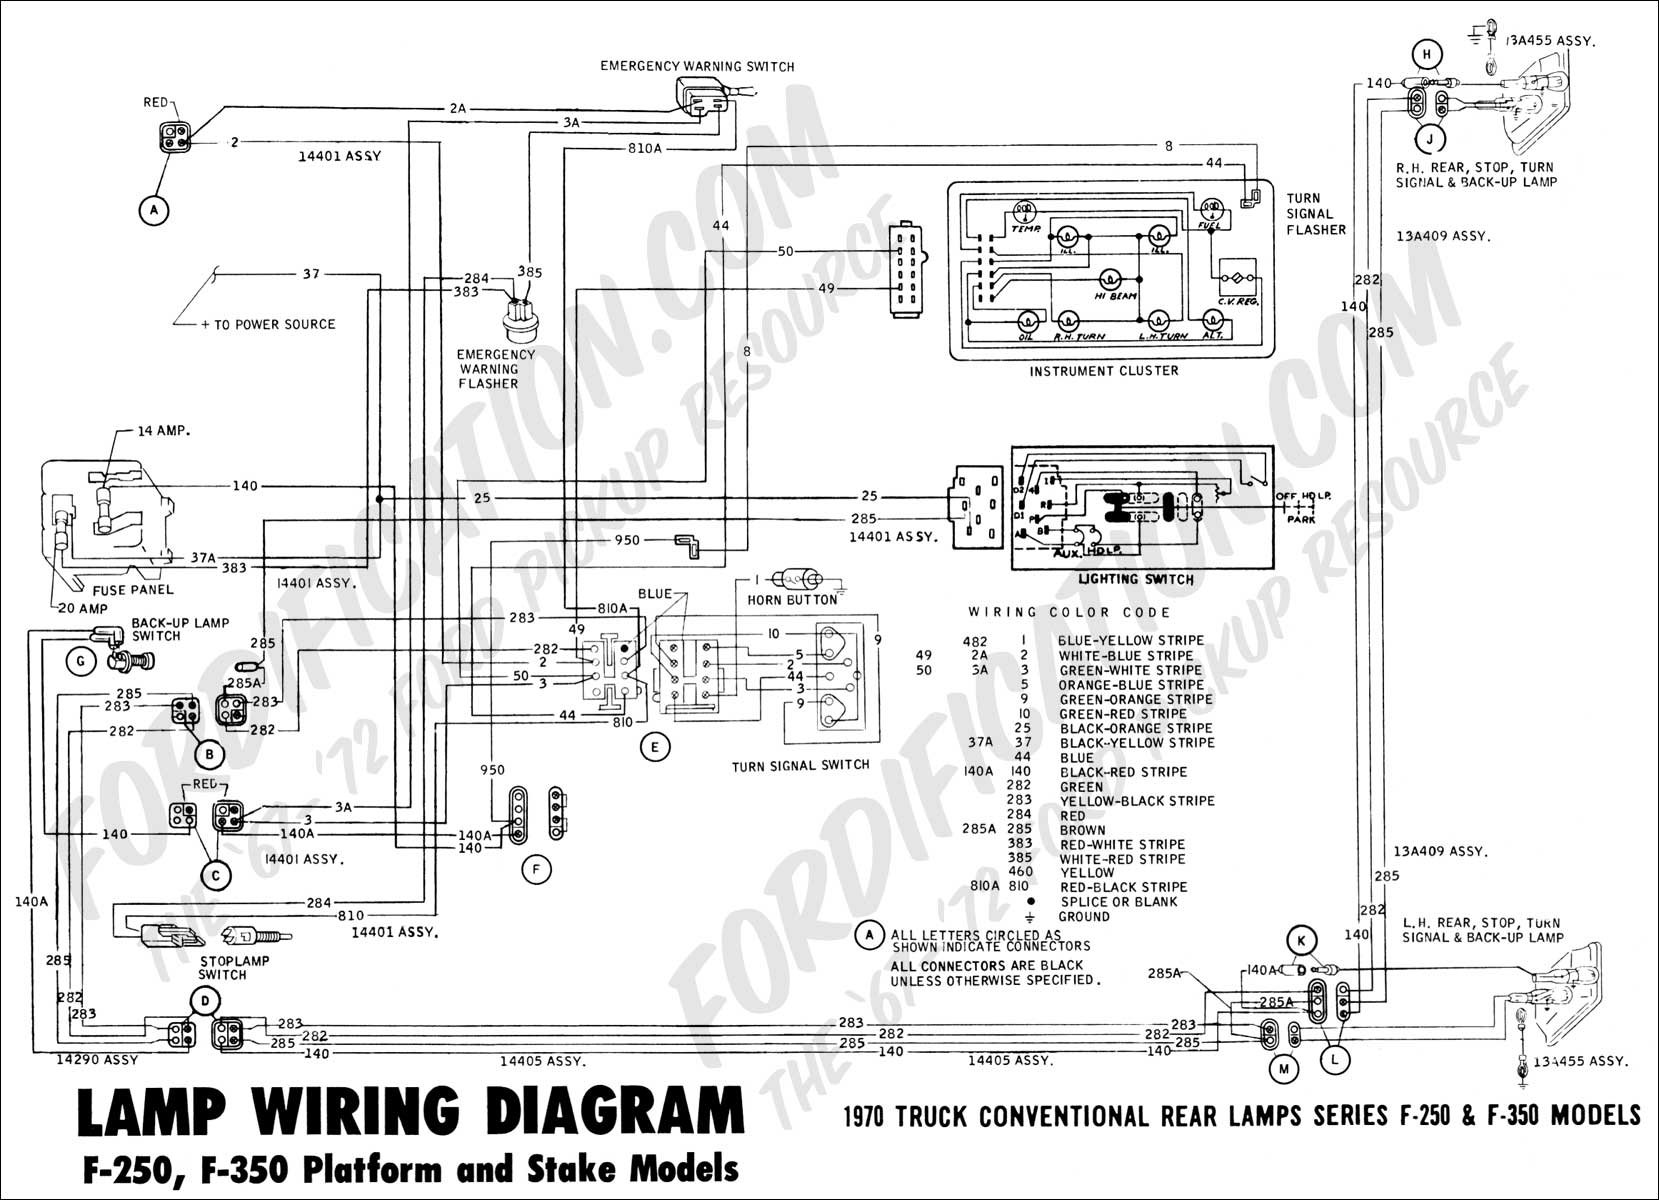 93 F150 Wiring Diagram Manual Guide 1992 Ford F 150 Starter Solenoid Get Free Image About 94